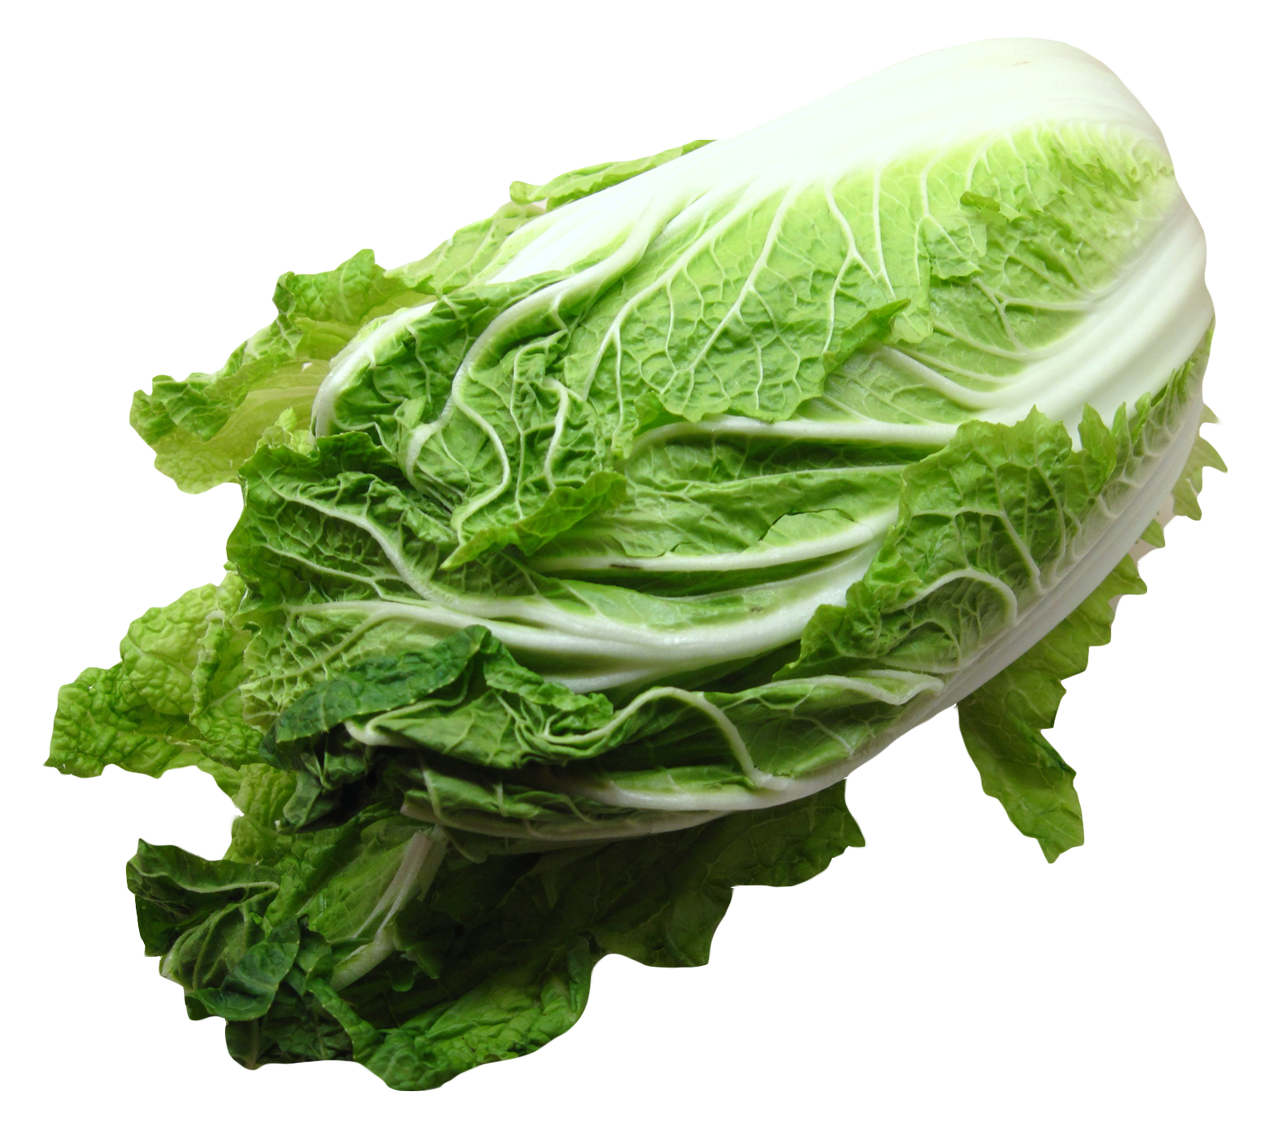 Png image purepng free. Cabbage clipart napa cabbage